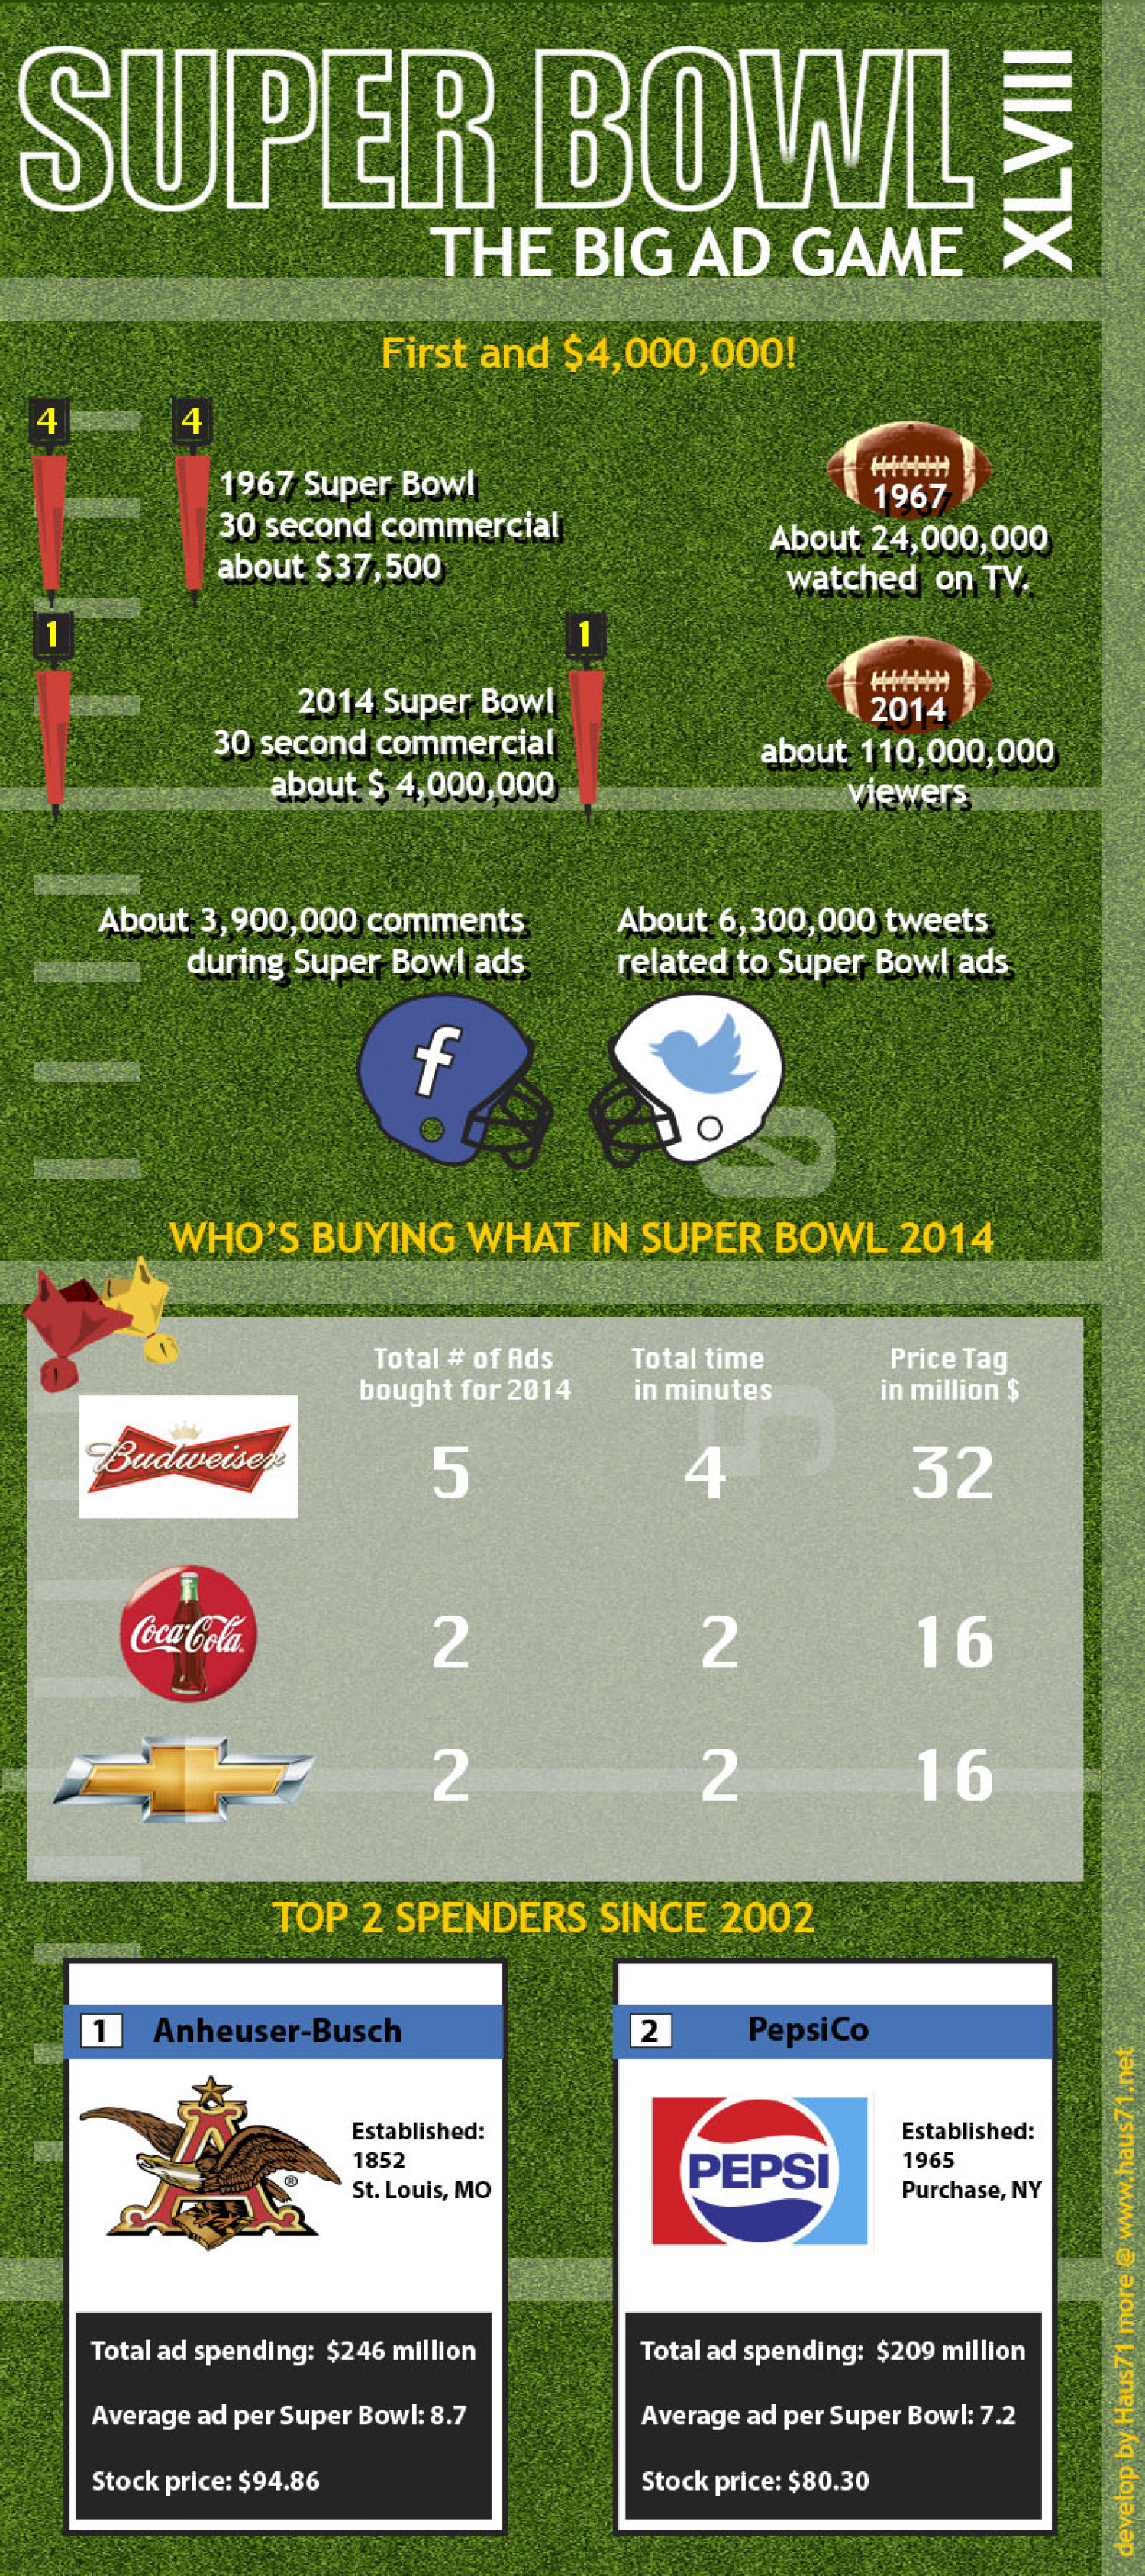 Super Bowl The Big Ad Game Infographic